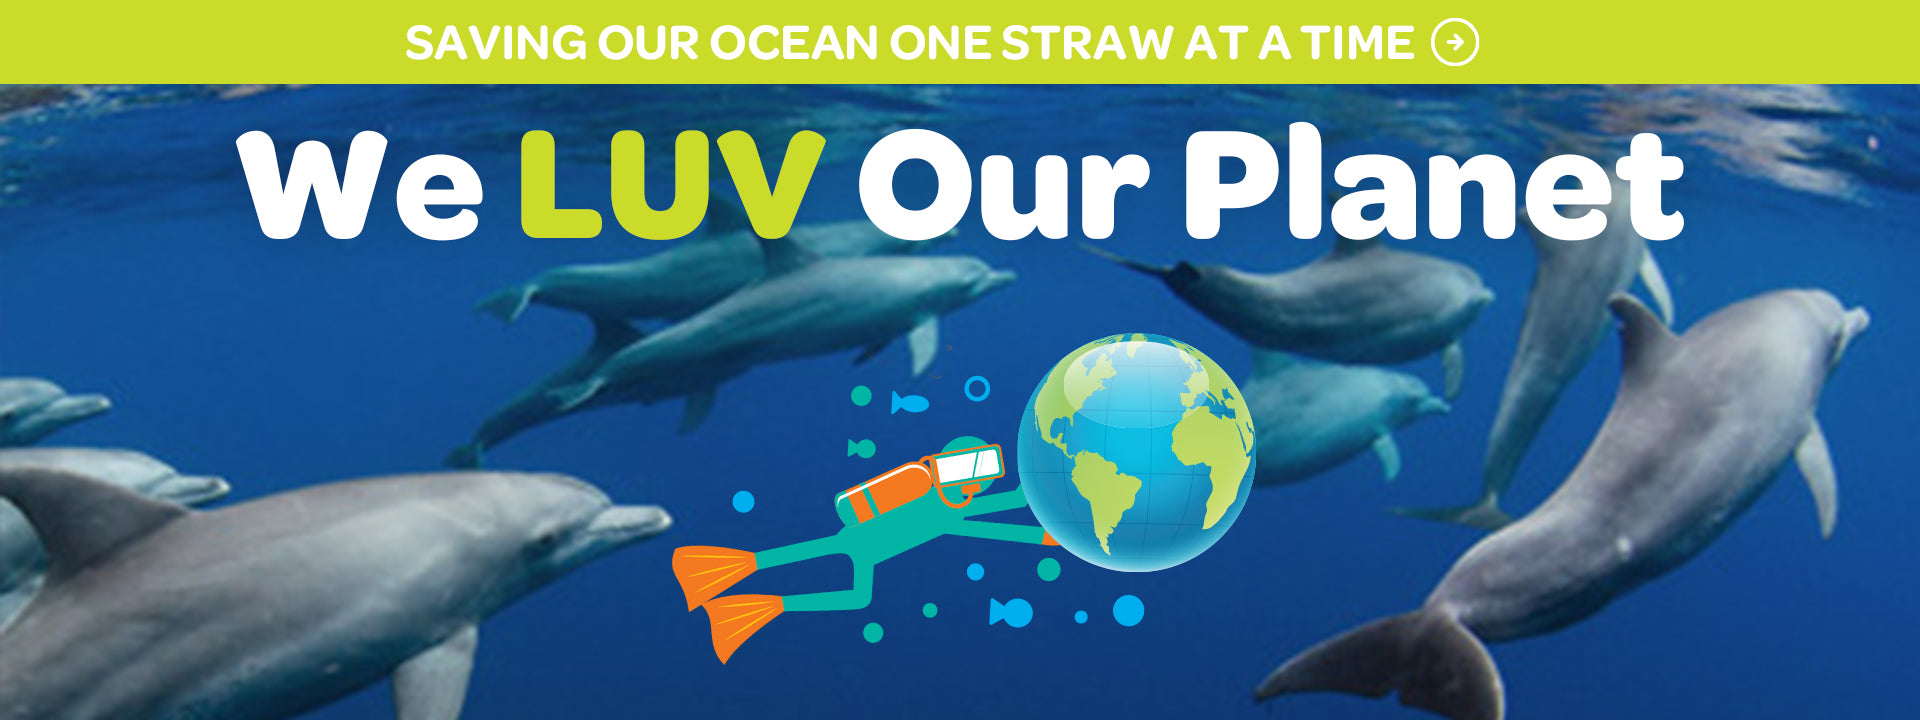 Saving our ocean one straw at a time